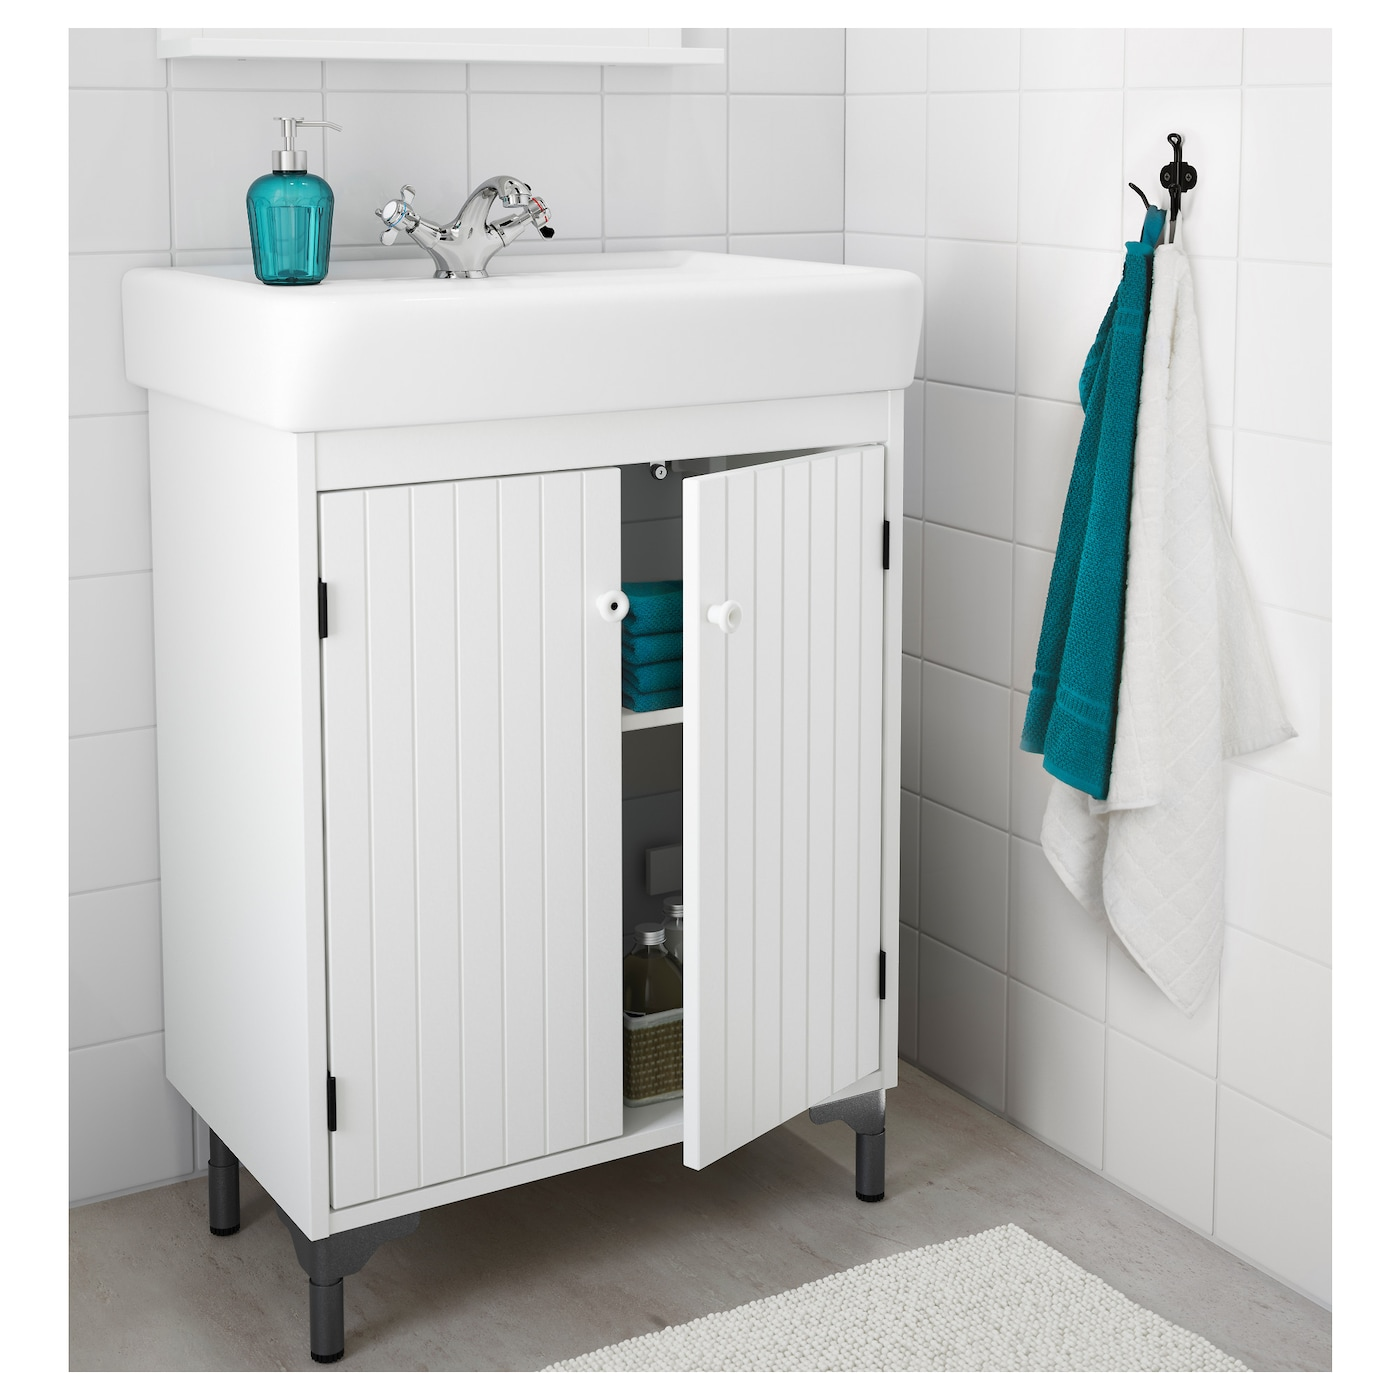 IKEA SILVERÅN/HAMNVIKEN wash-basin cabinet with 2 doors A good solution if you are short of space.